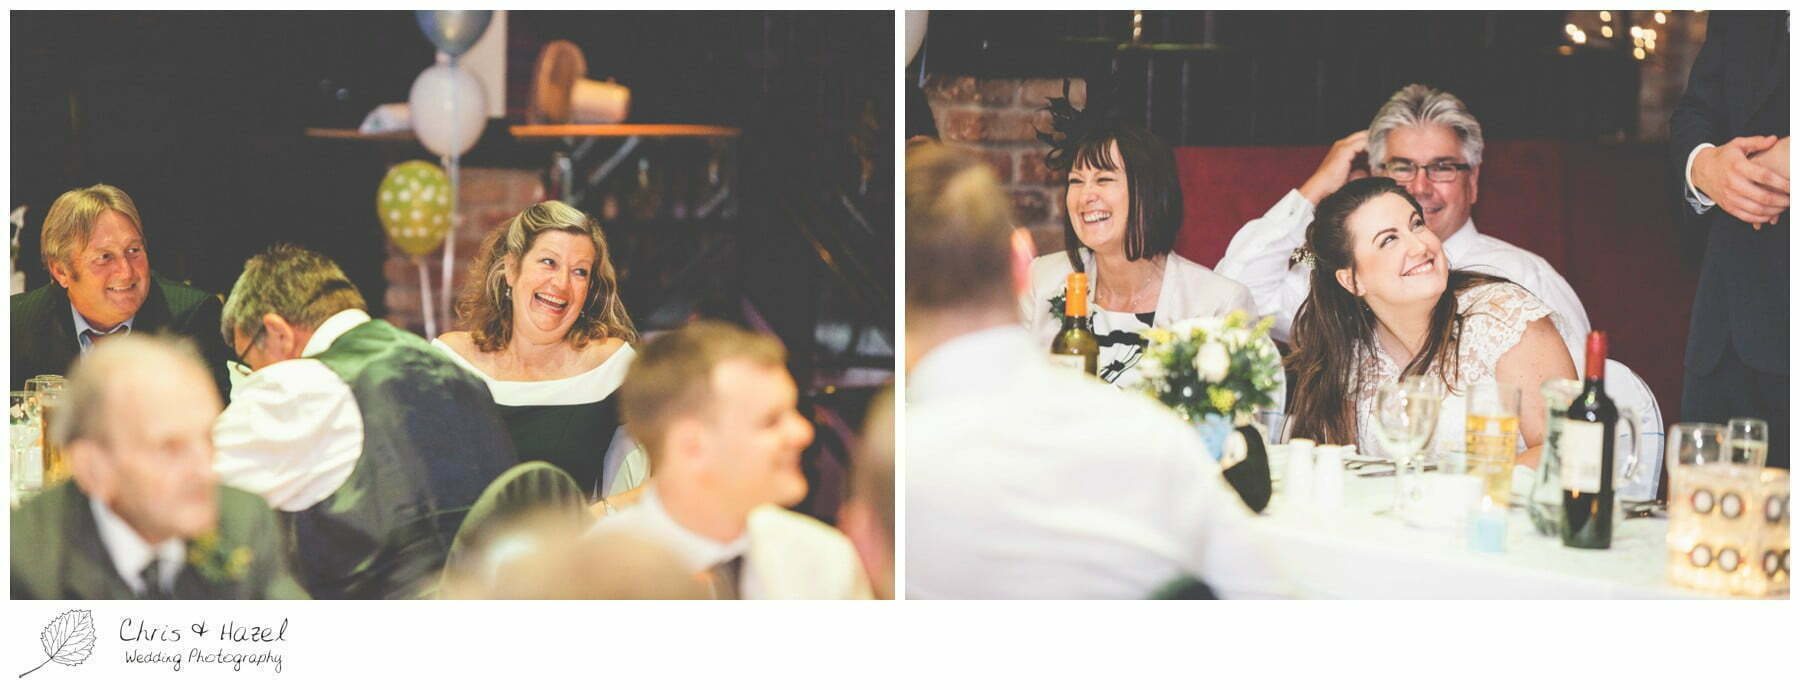 groom wedding speech, wedding, south milford Wedding Photographer, the engine shed, wetherby wedding venue, Wedding Photography wetherby, Chris and Hazel Wedding Photography, stevie pollard, stevie standerline, paul standerline,